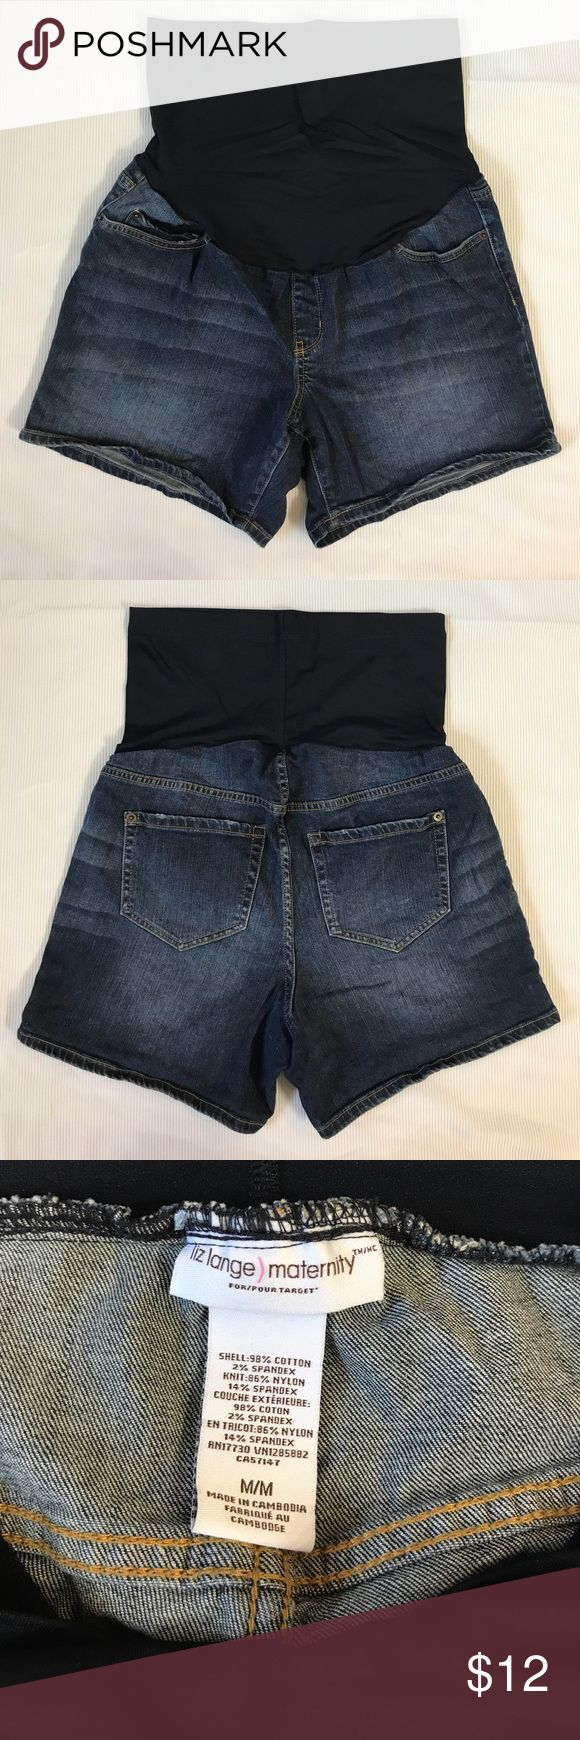 "Liz Lange Maternity Shorts Denim M EUC. 5 pockets. Inseam 5"" Rise 6"" Across Waist 16.5"" Across Hip 21"" Total Length 21.5"" Liz Lange for Target Shorts Jean Shorts"